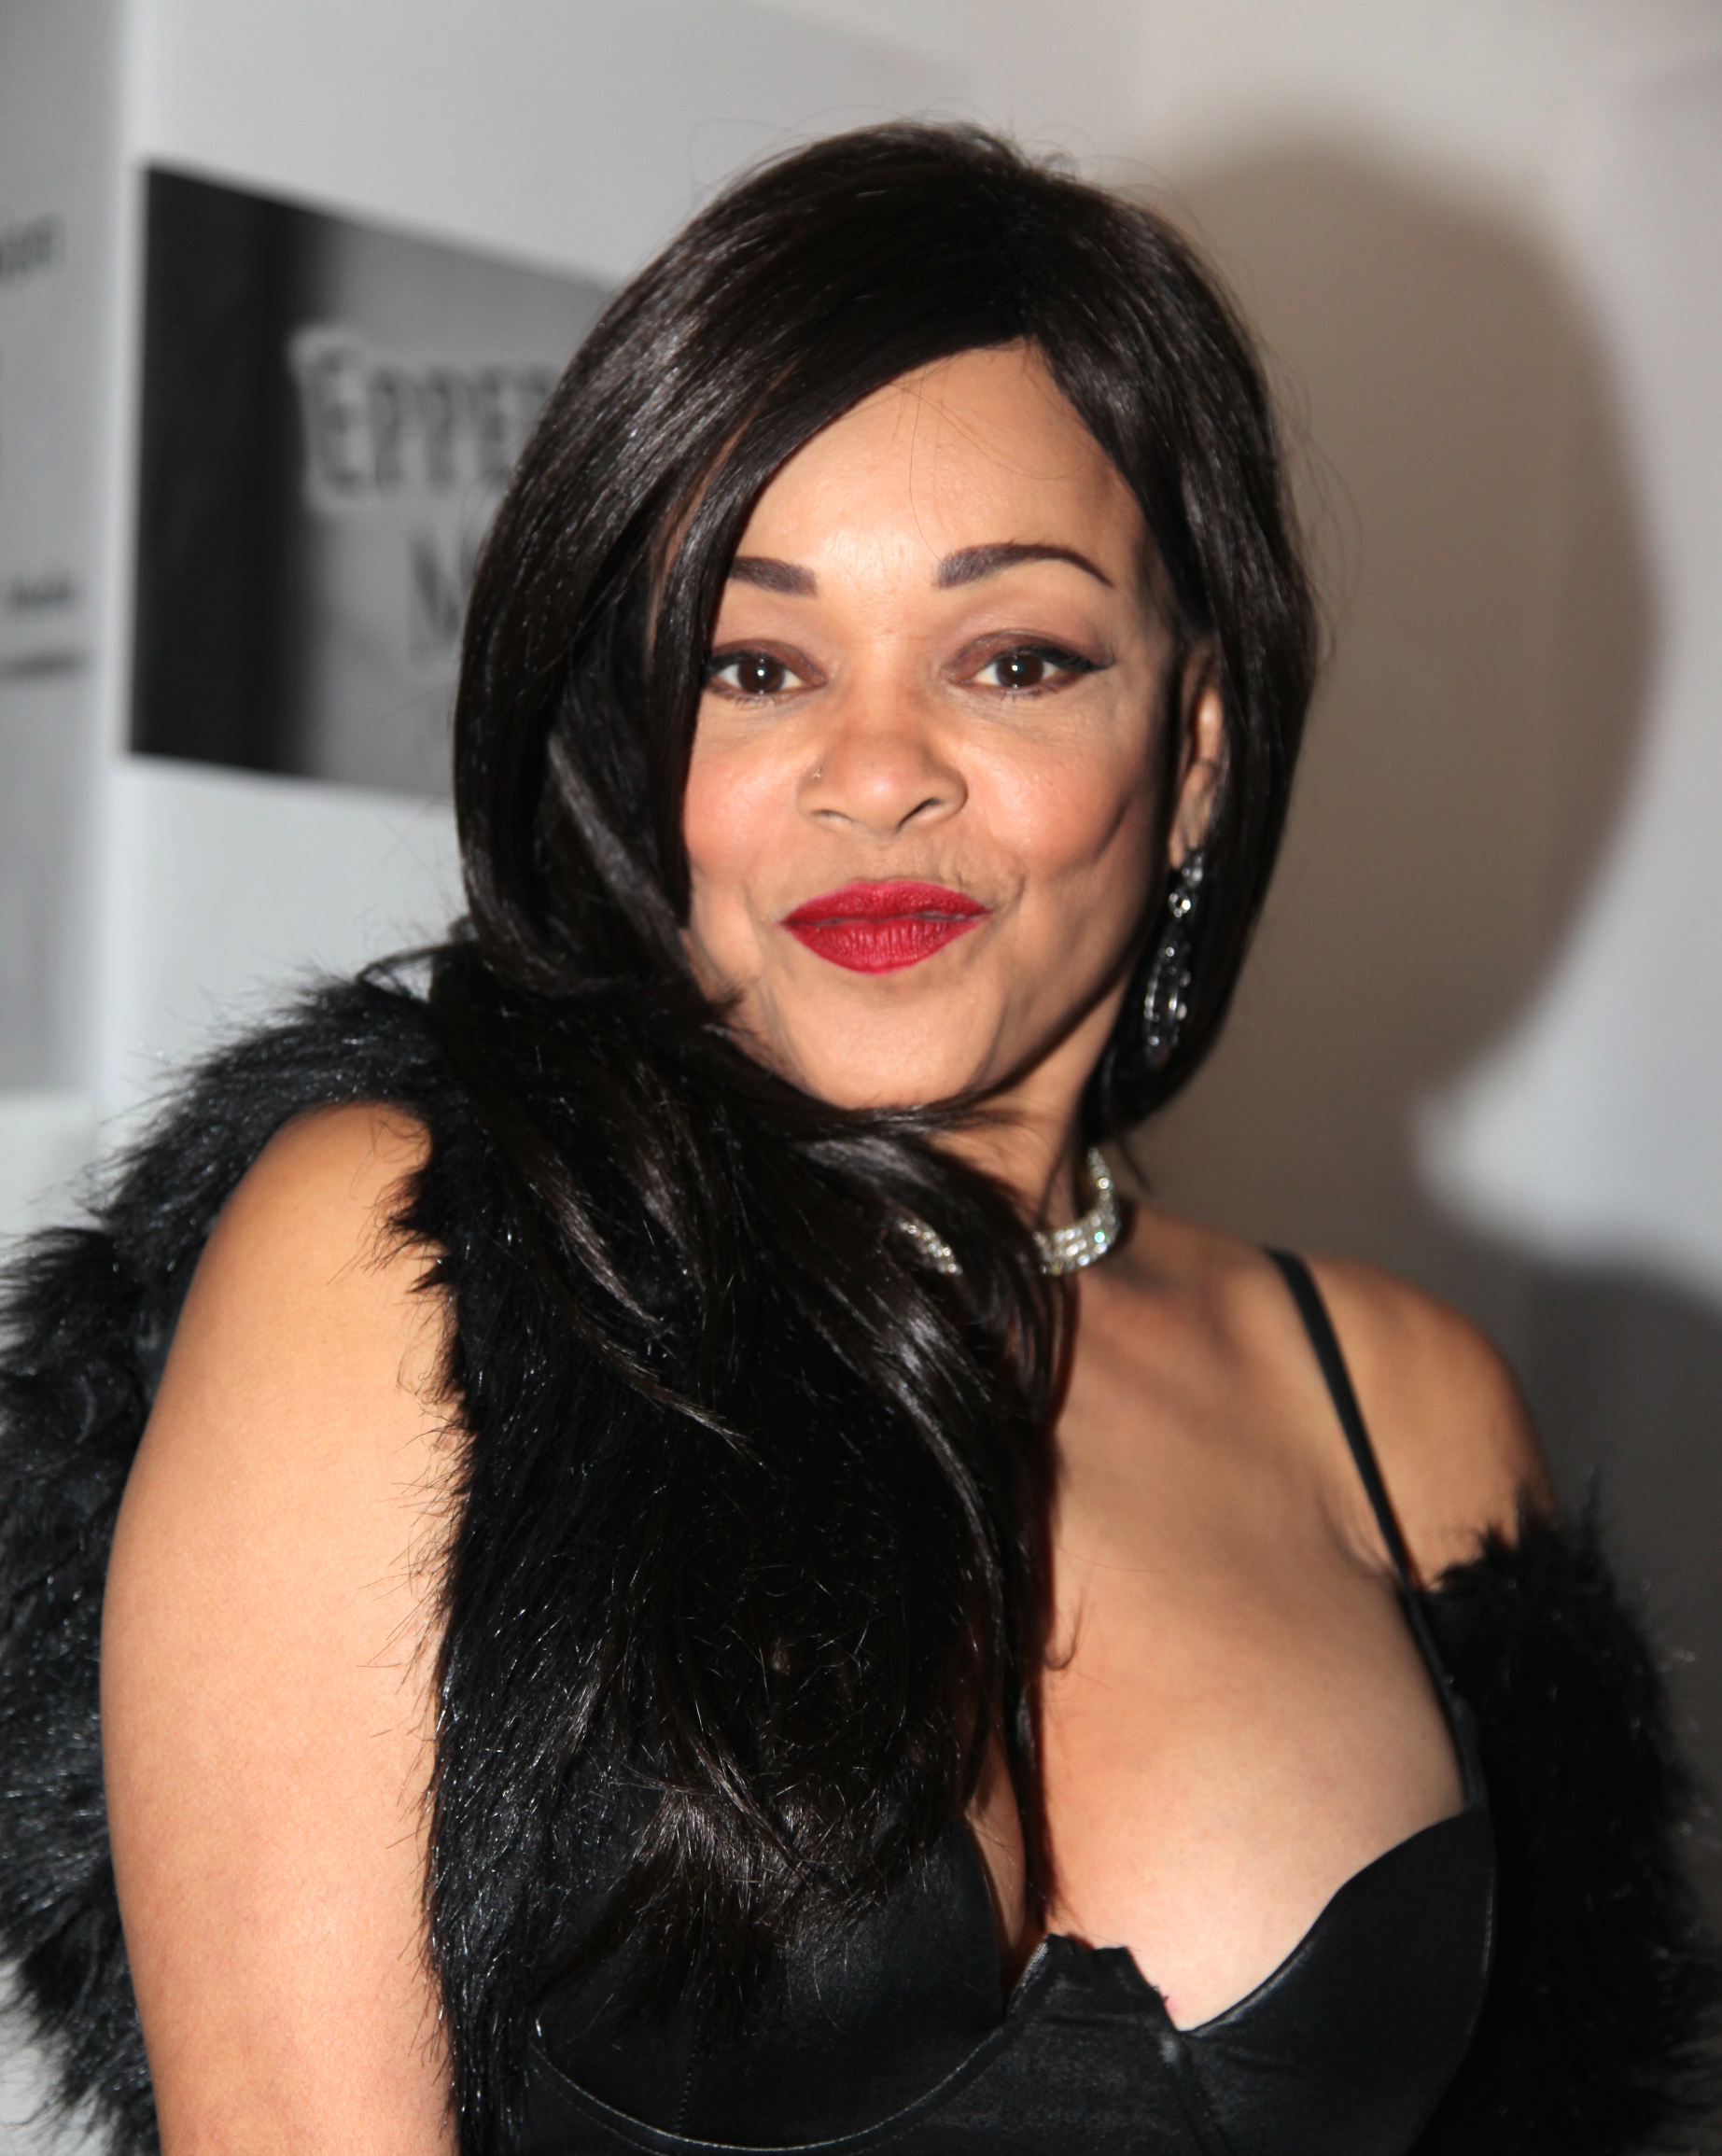 'Thriller' Star Ola Ray Gets Restraining Order Against Ex-Manager